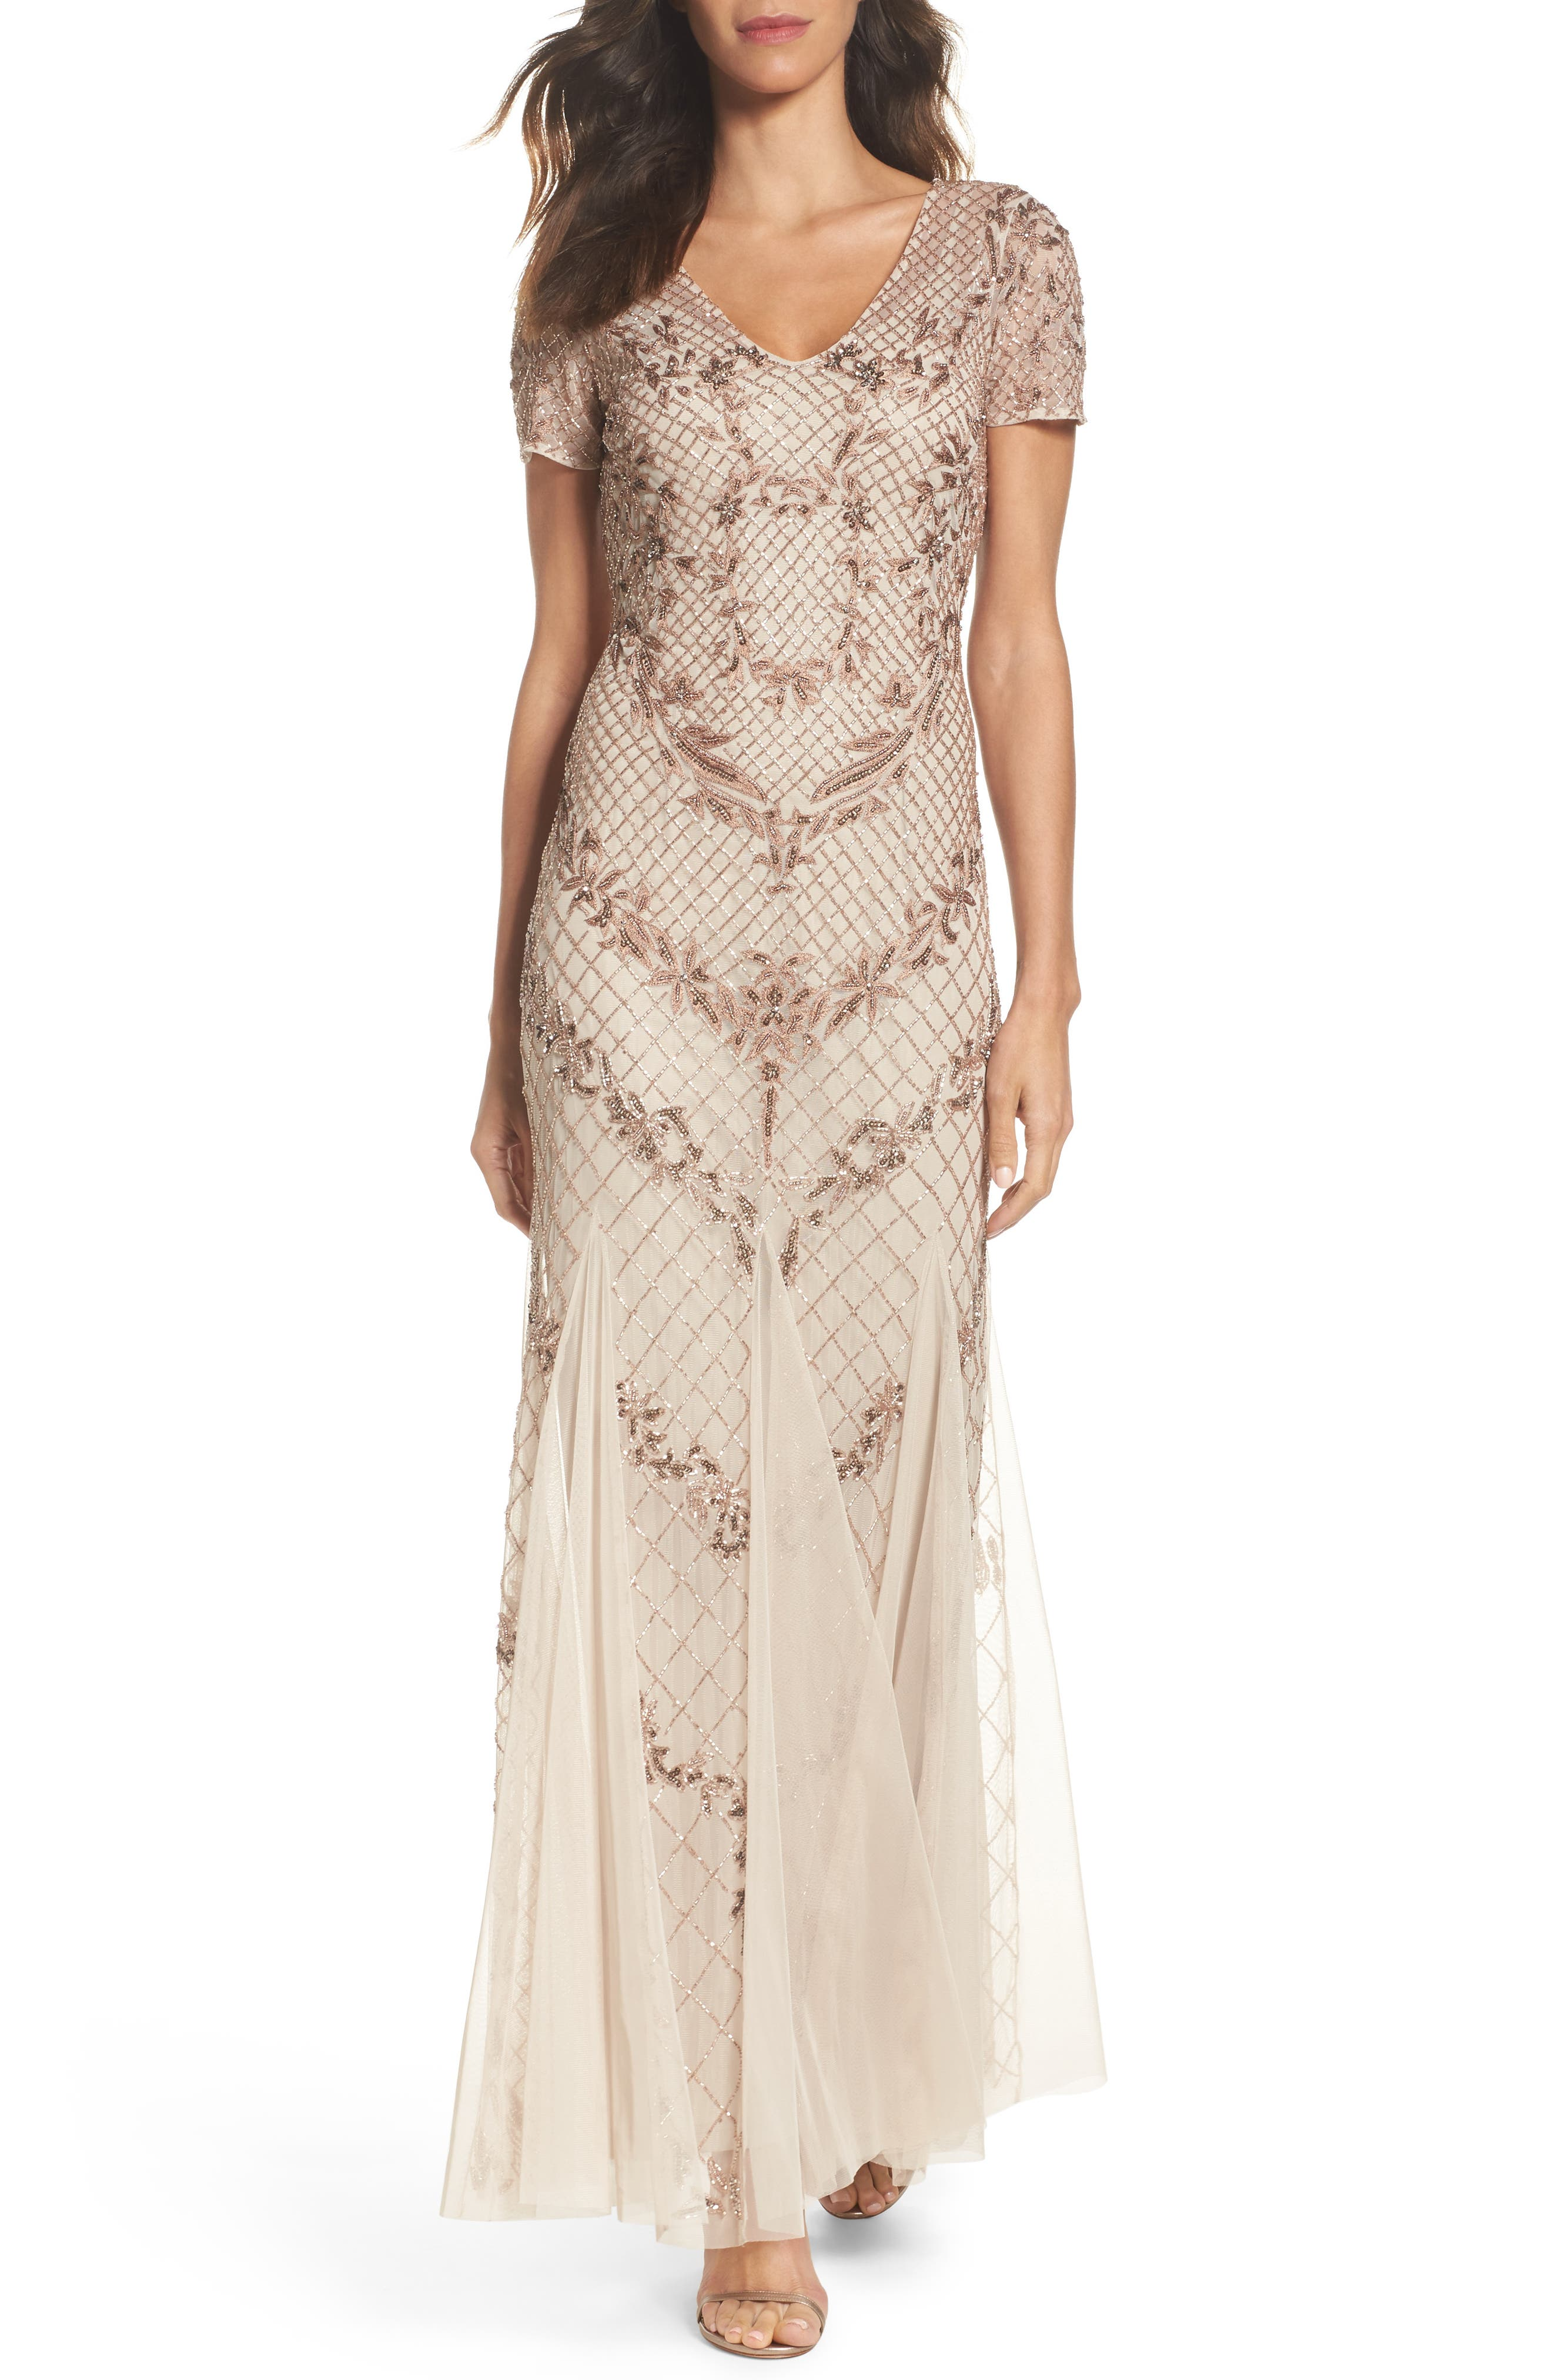 Adrianna Papell Beaded Mesh Mermaid Gown